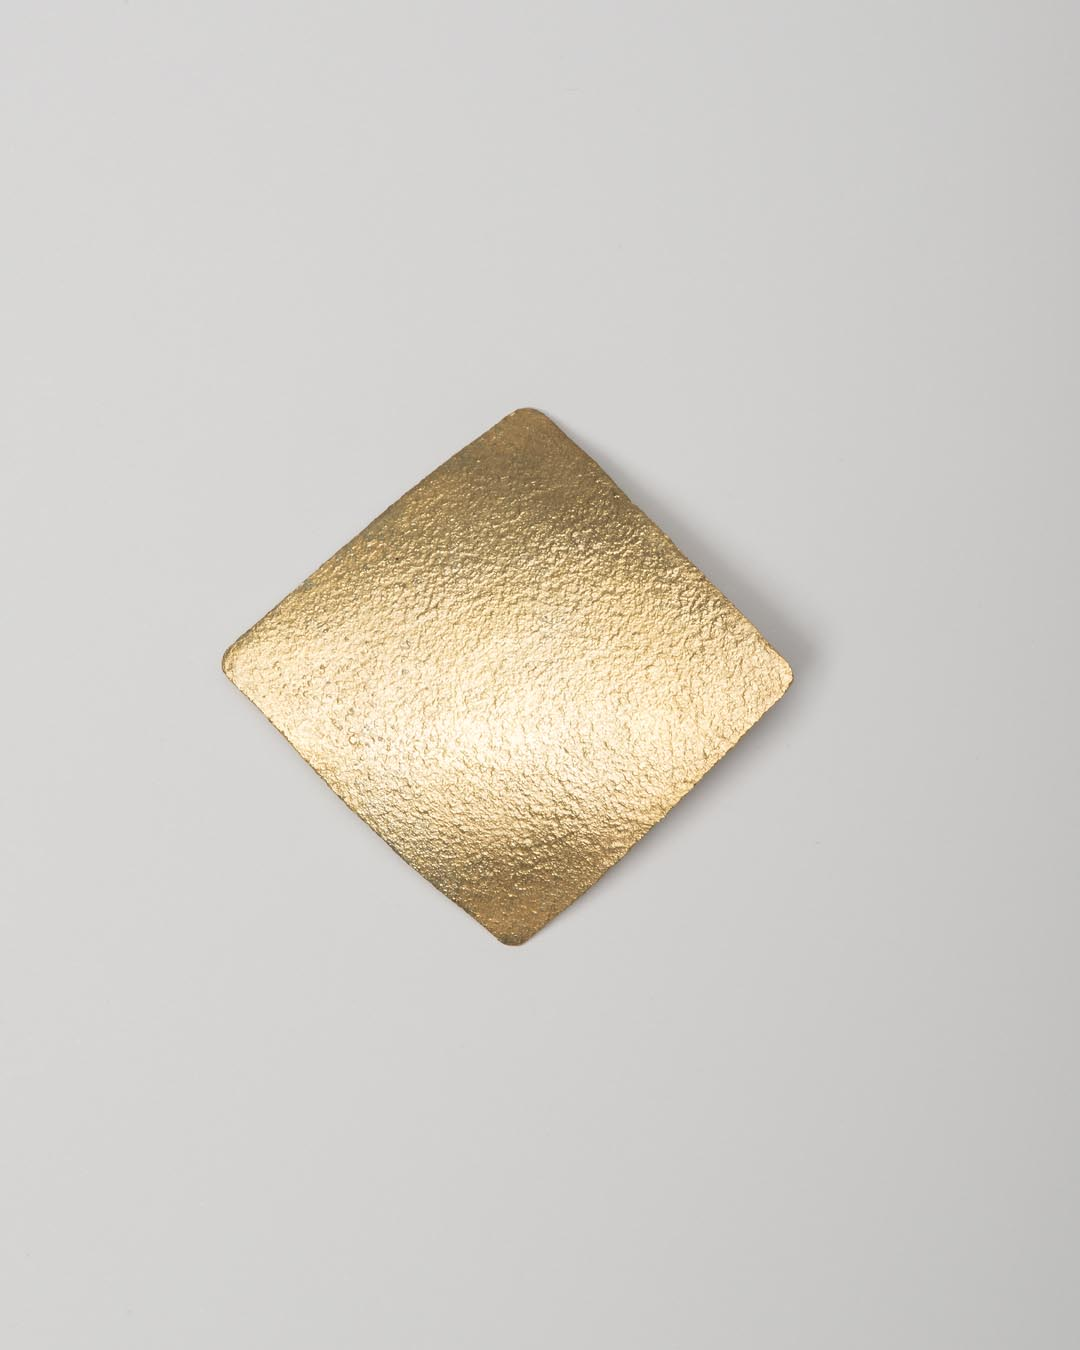 Yasuki Hiramatsu, untitled, brooch; gold-plated silver, 64 x 60 x 11 mm, €750